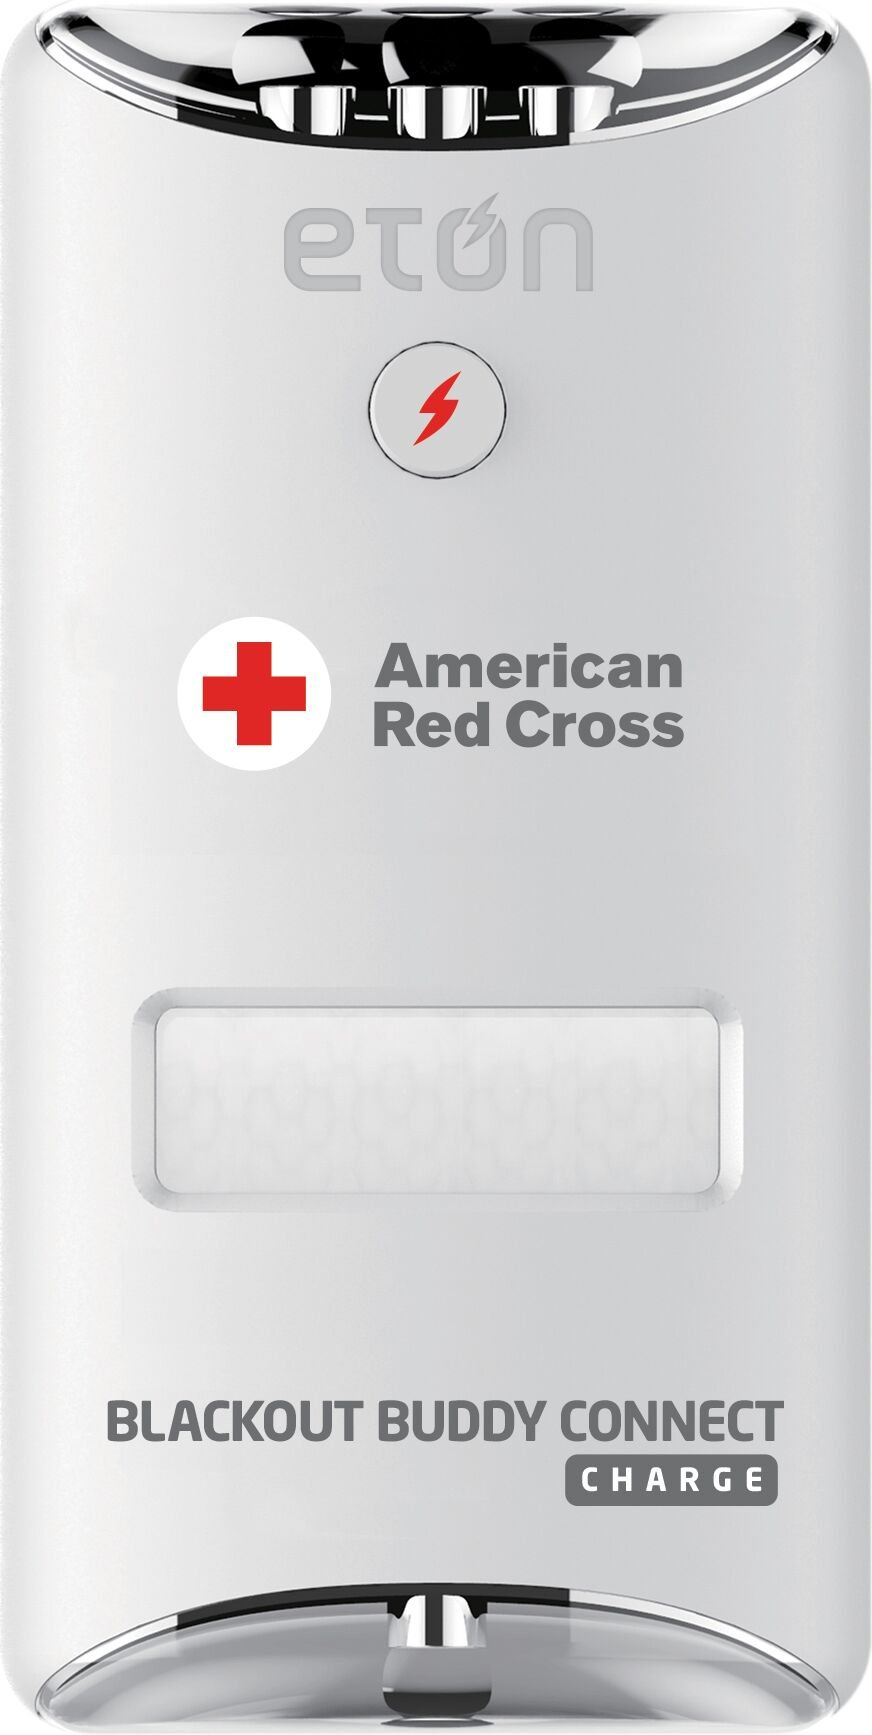 American Red Cross Blackout Buddy Connect Charge, Connects with Amazon Alexa, Apple HomeKit and Google Home, Connects to WiFI, USB Charger, RCCONNECTCHG-AAG